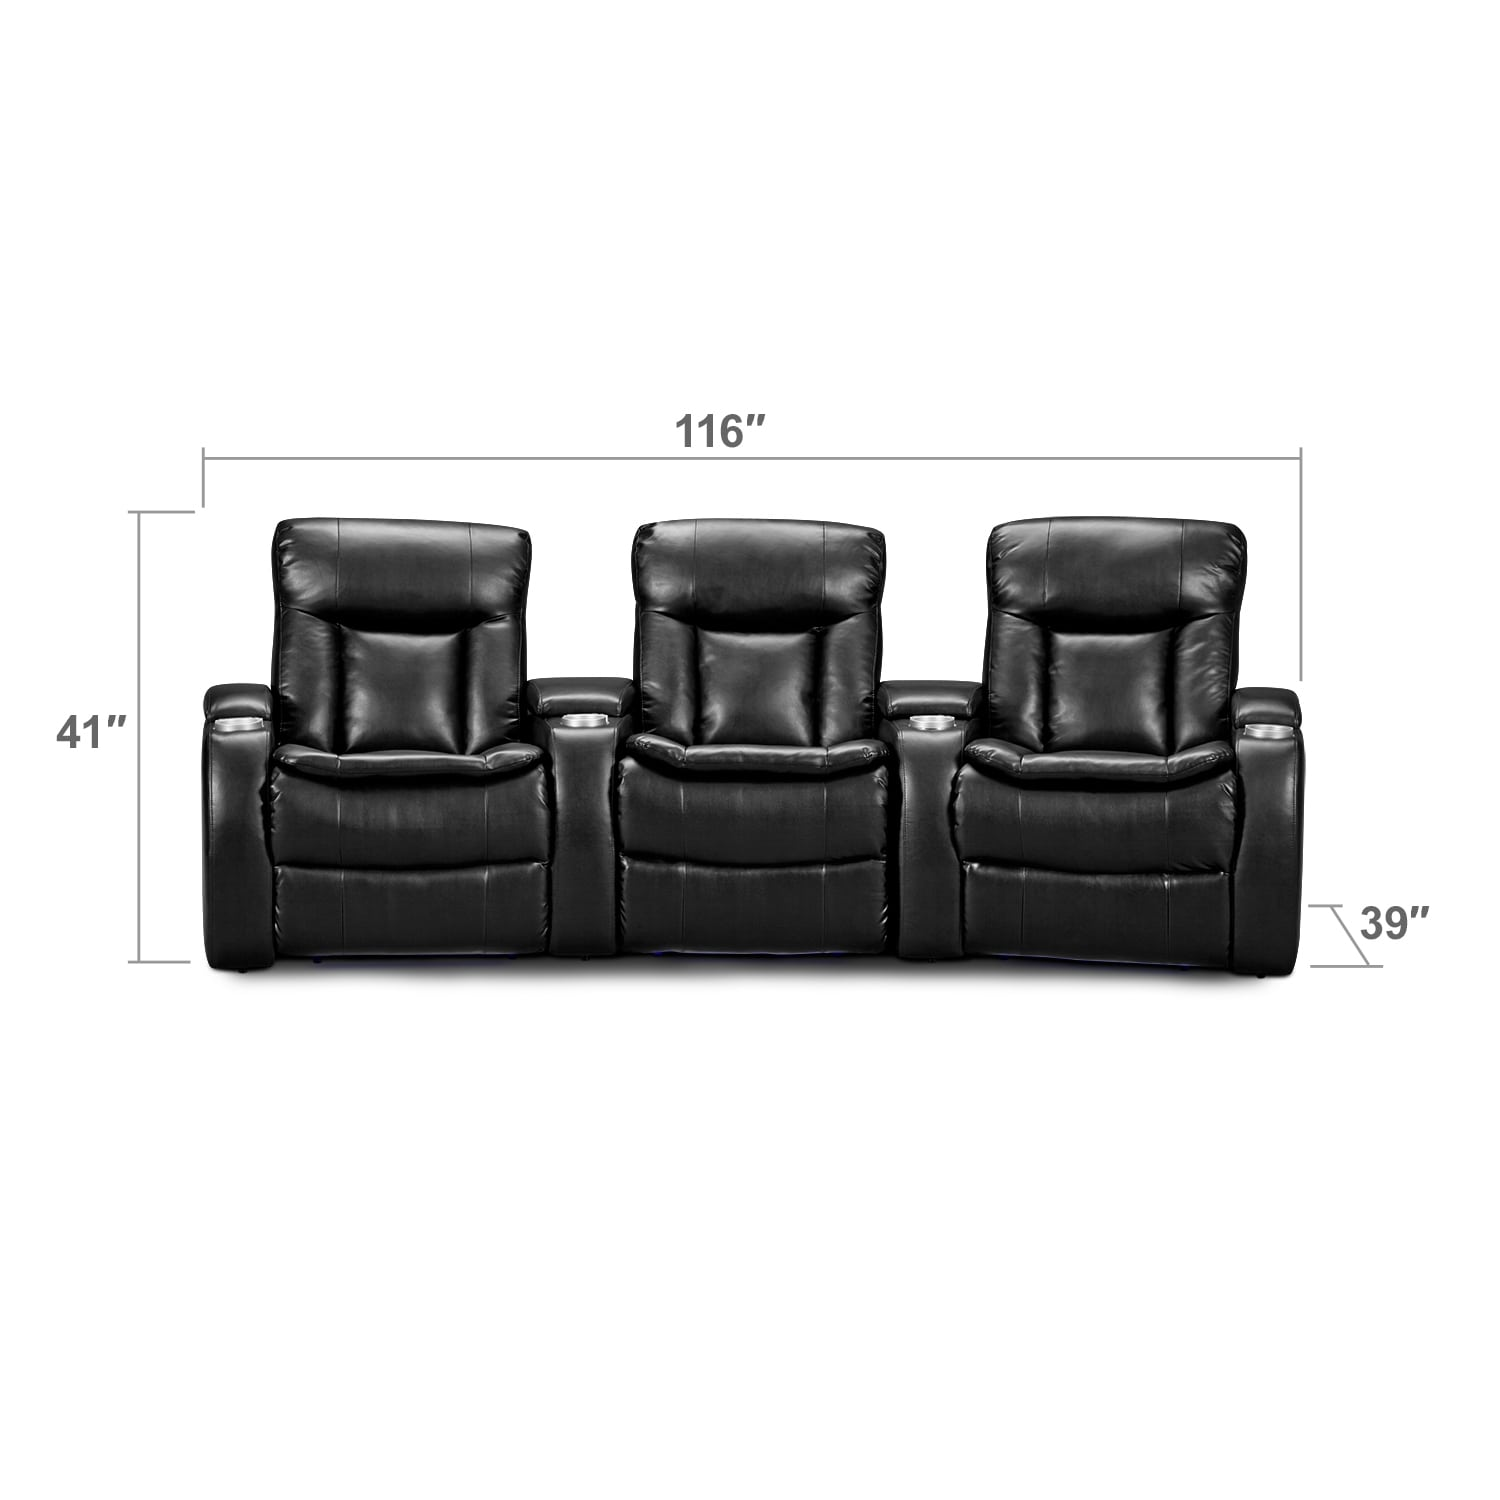 Living Room Furniture - Larson 3 Pc. Power Reclining Home Theater Sectional